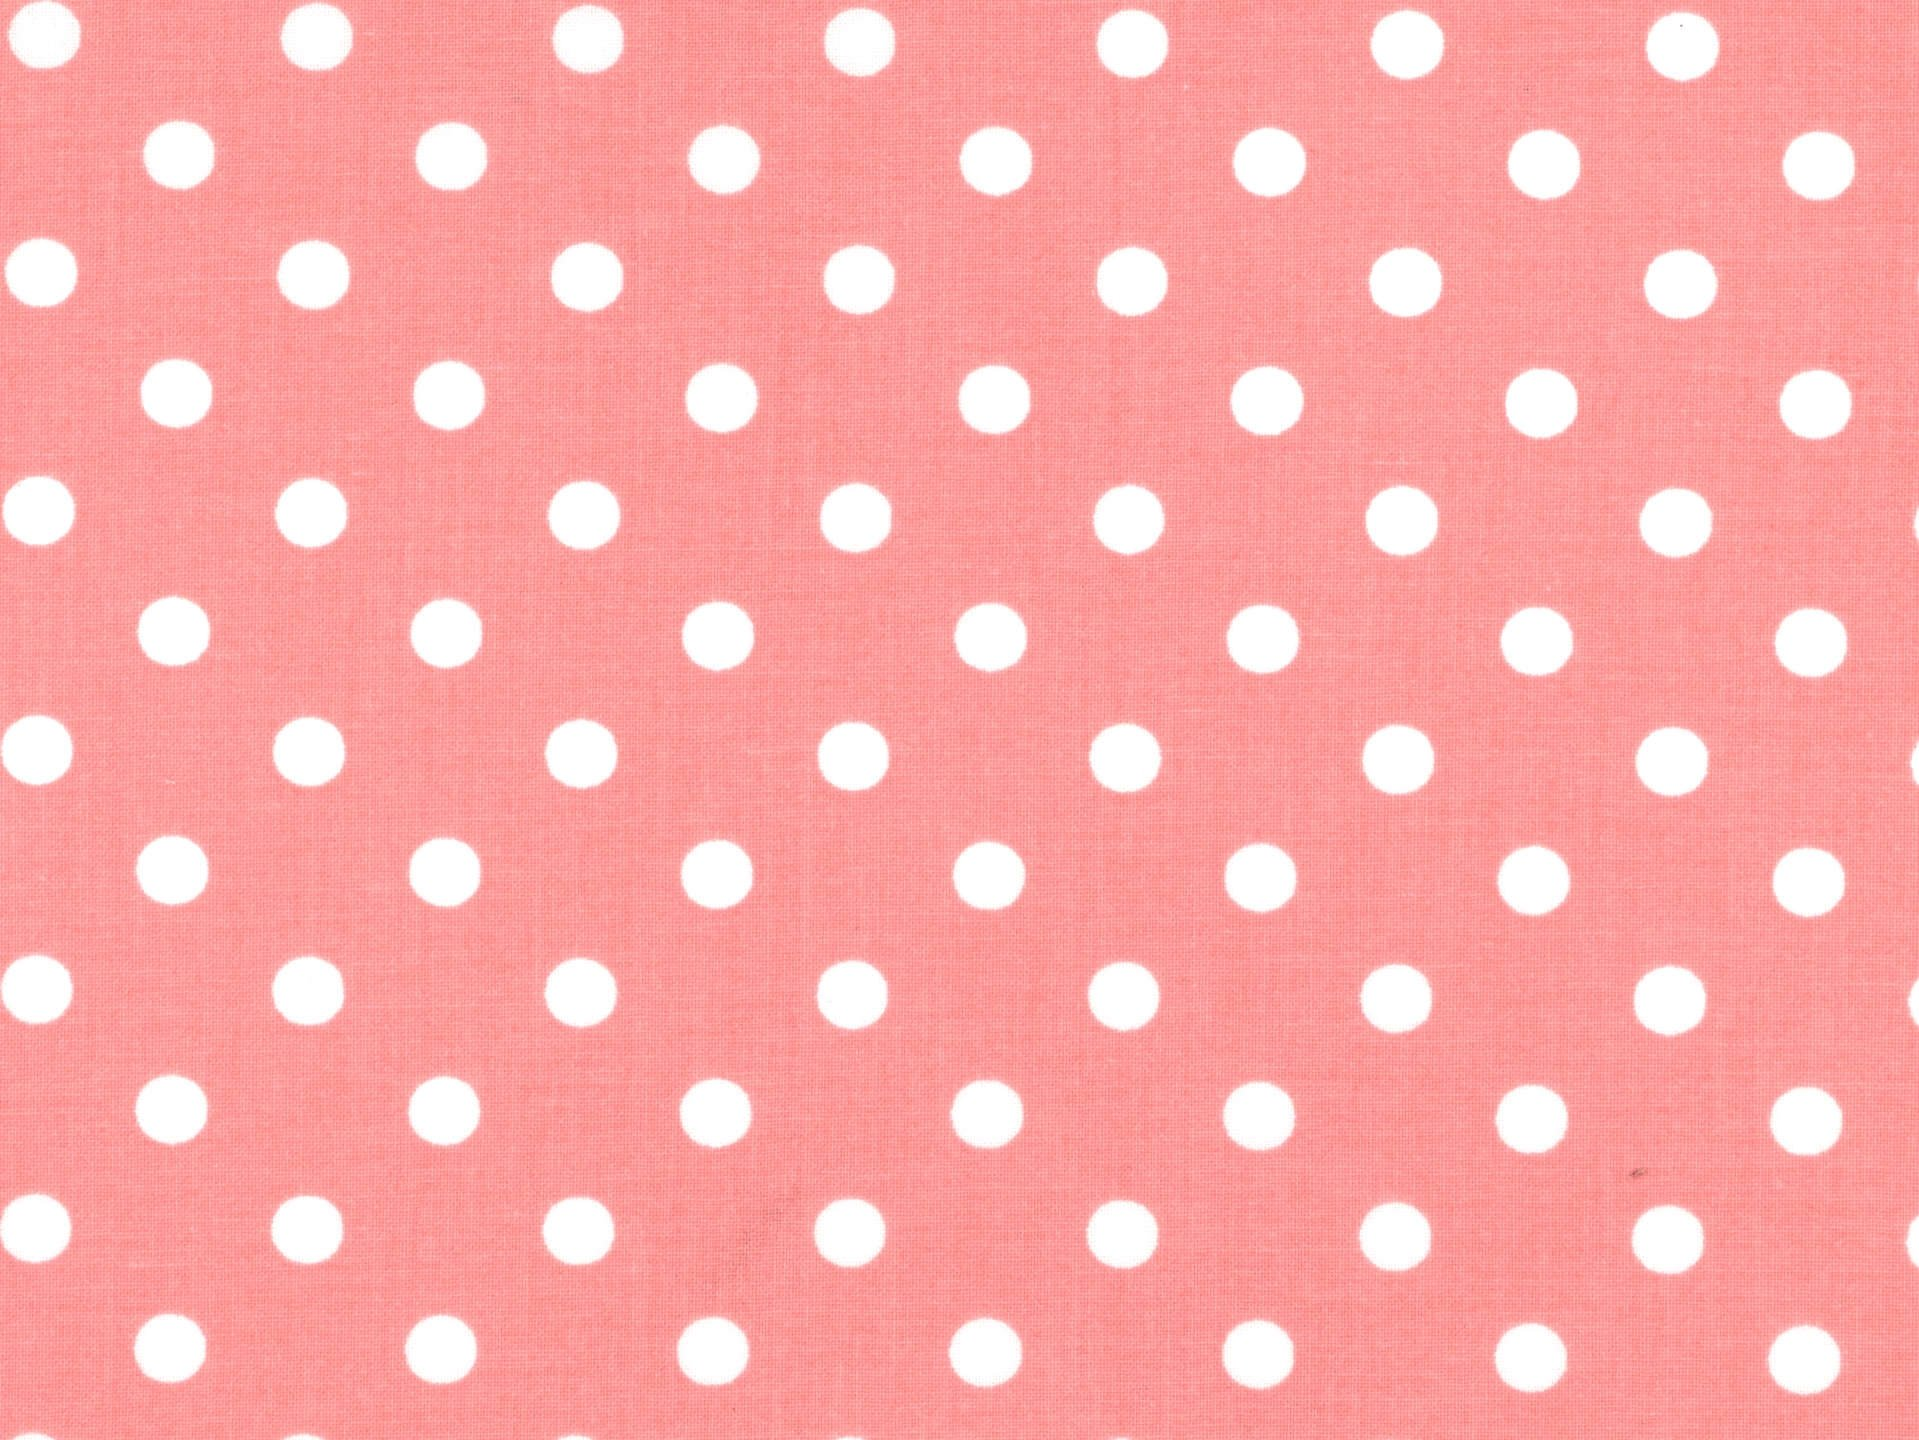 1/4 White Dot on Pink